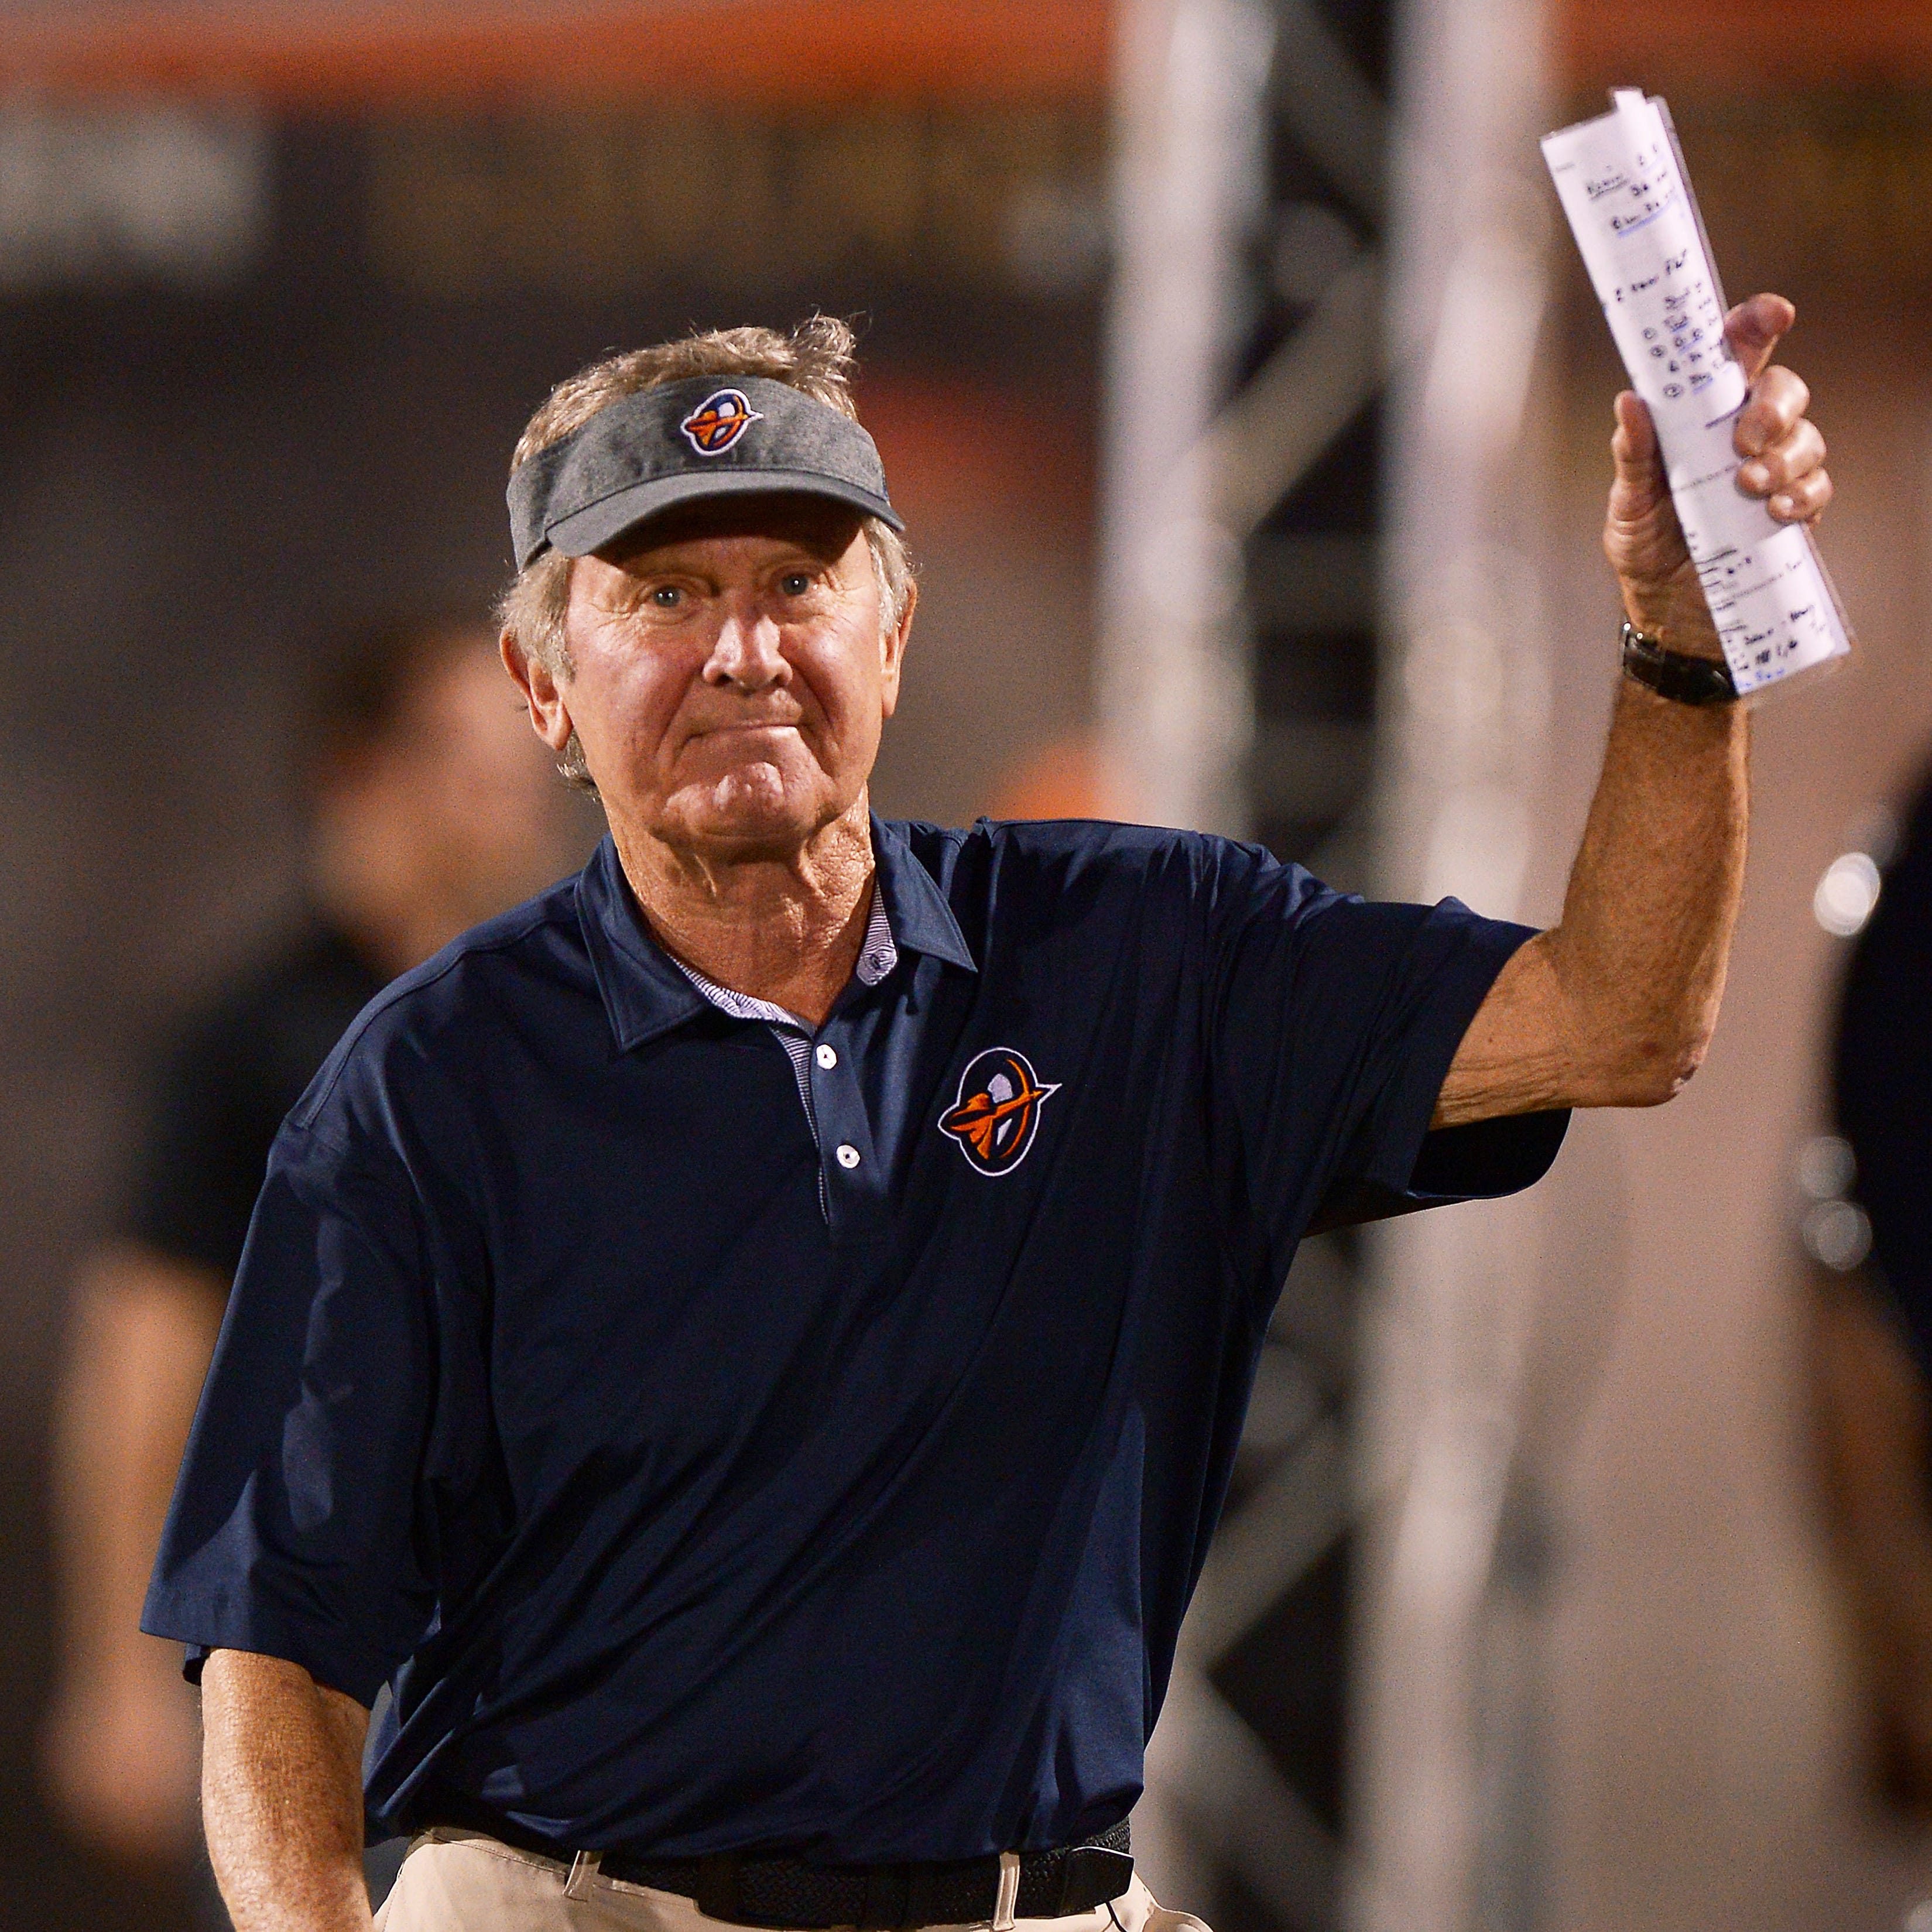 Memphis Express needle Steve Spurrier about 2013 loss to UT Vols, Butch Jones